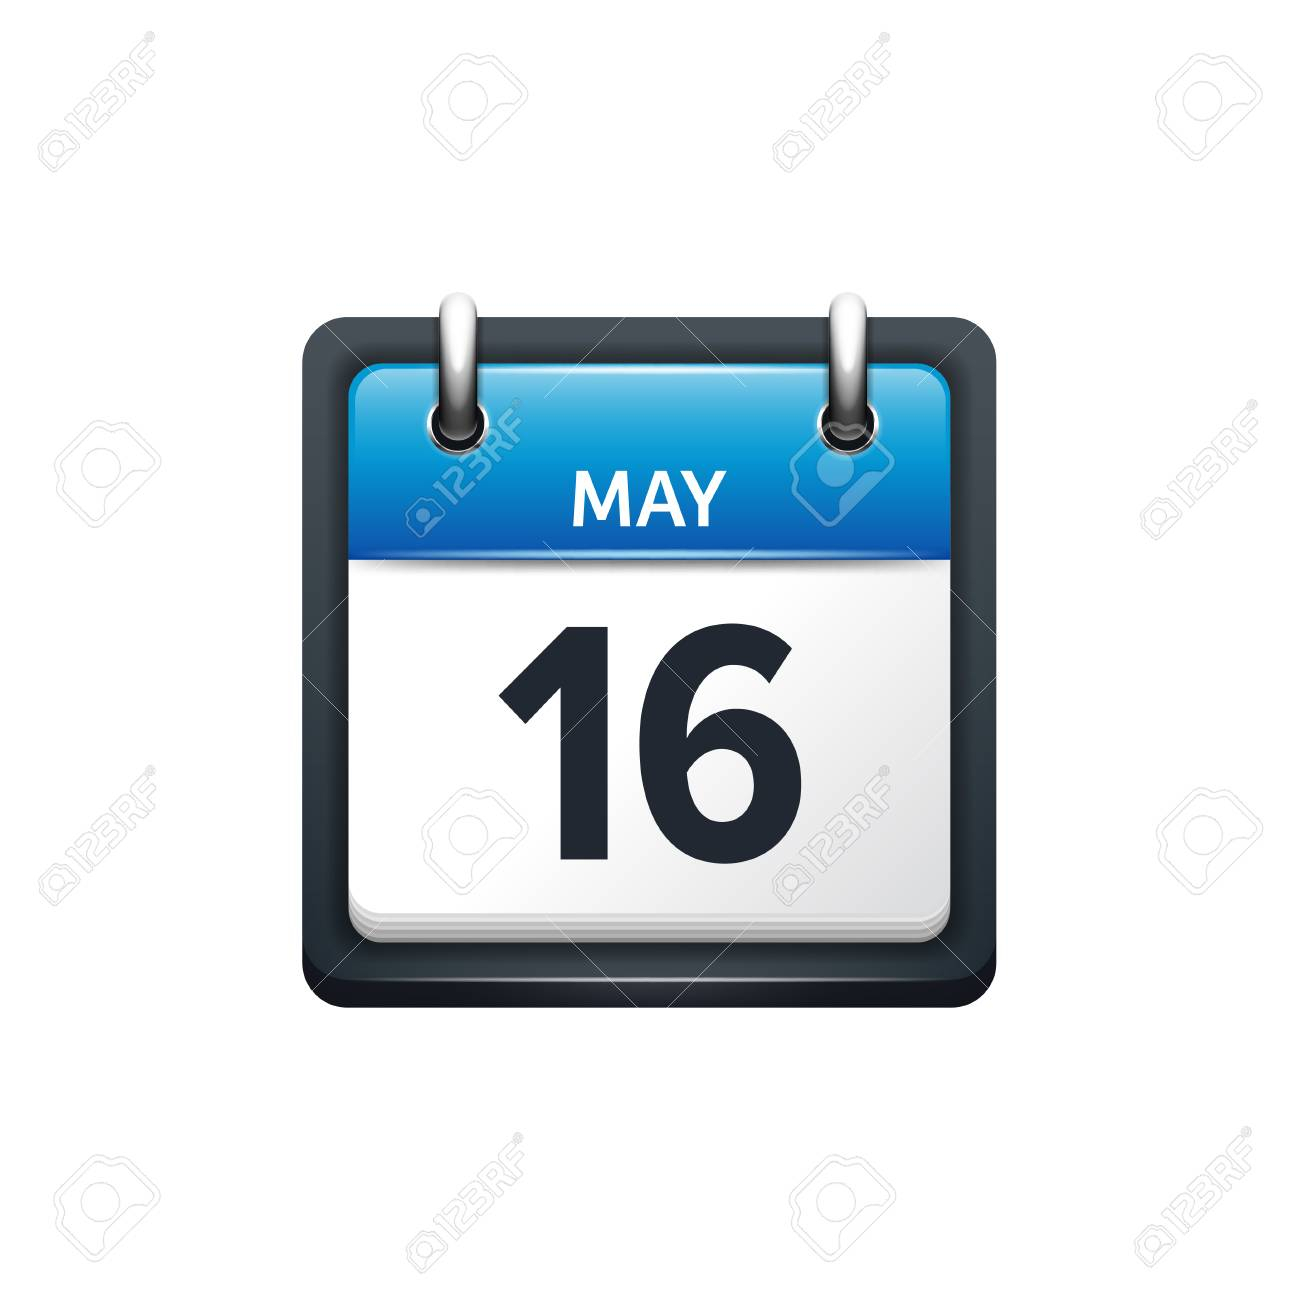 May 16. Calendar Icon.vector Illustration,flat Style.month And  Date.sunday,monday,tuesday,wednesday,thursday,friday,saturday.week,weekend,red  Letter for Saturday To Friday Calendar